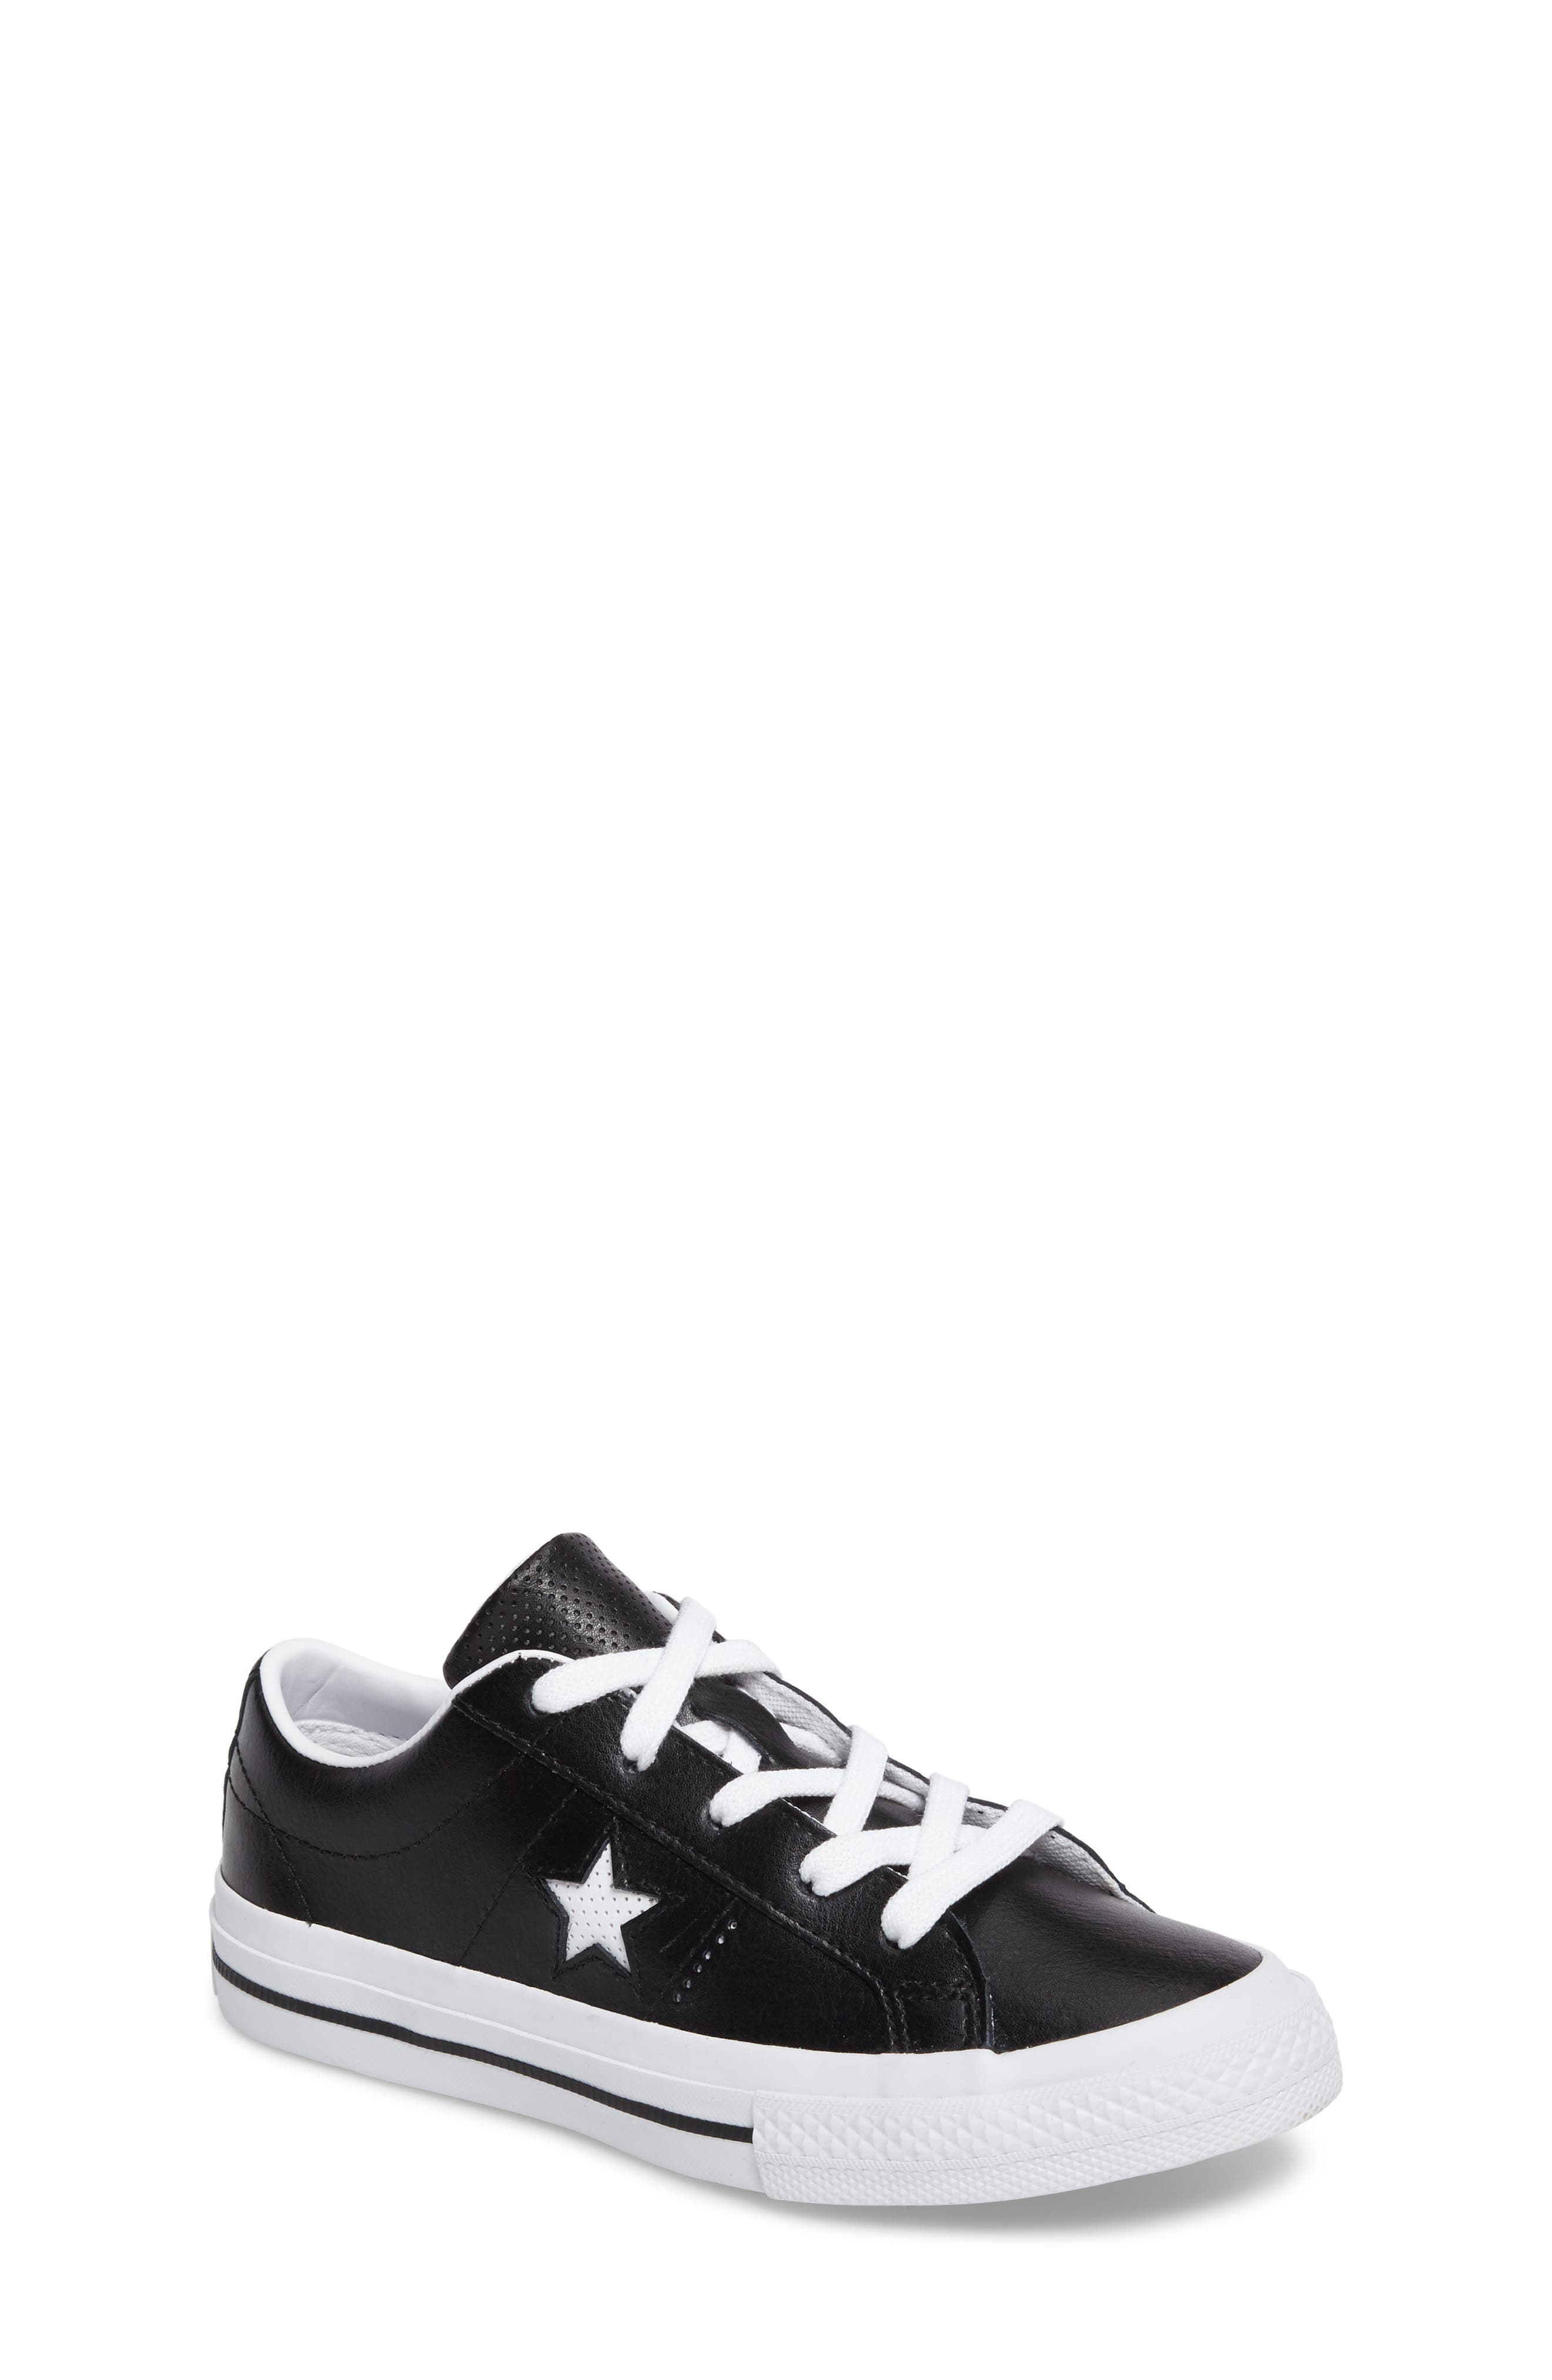 Chuck Taylor<sup>®</sup> All Star<sup>®</sup> One Star Sneaker,                             Main thumbnail 1, color,                             001